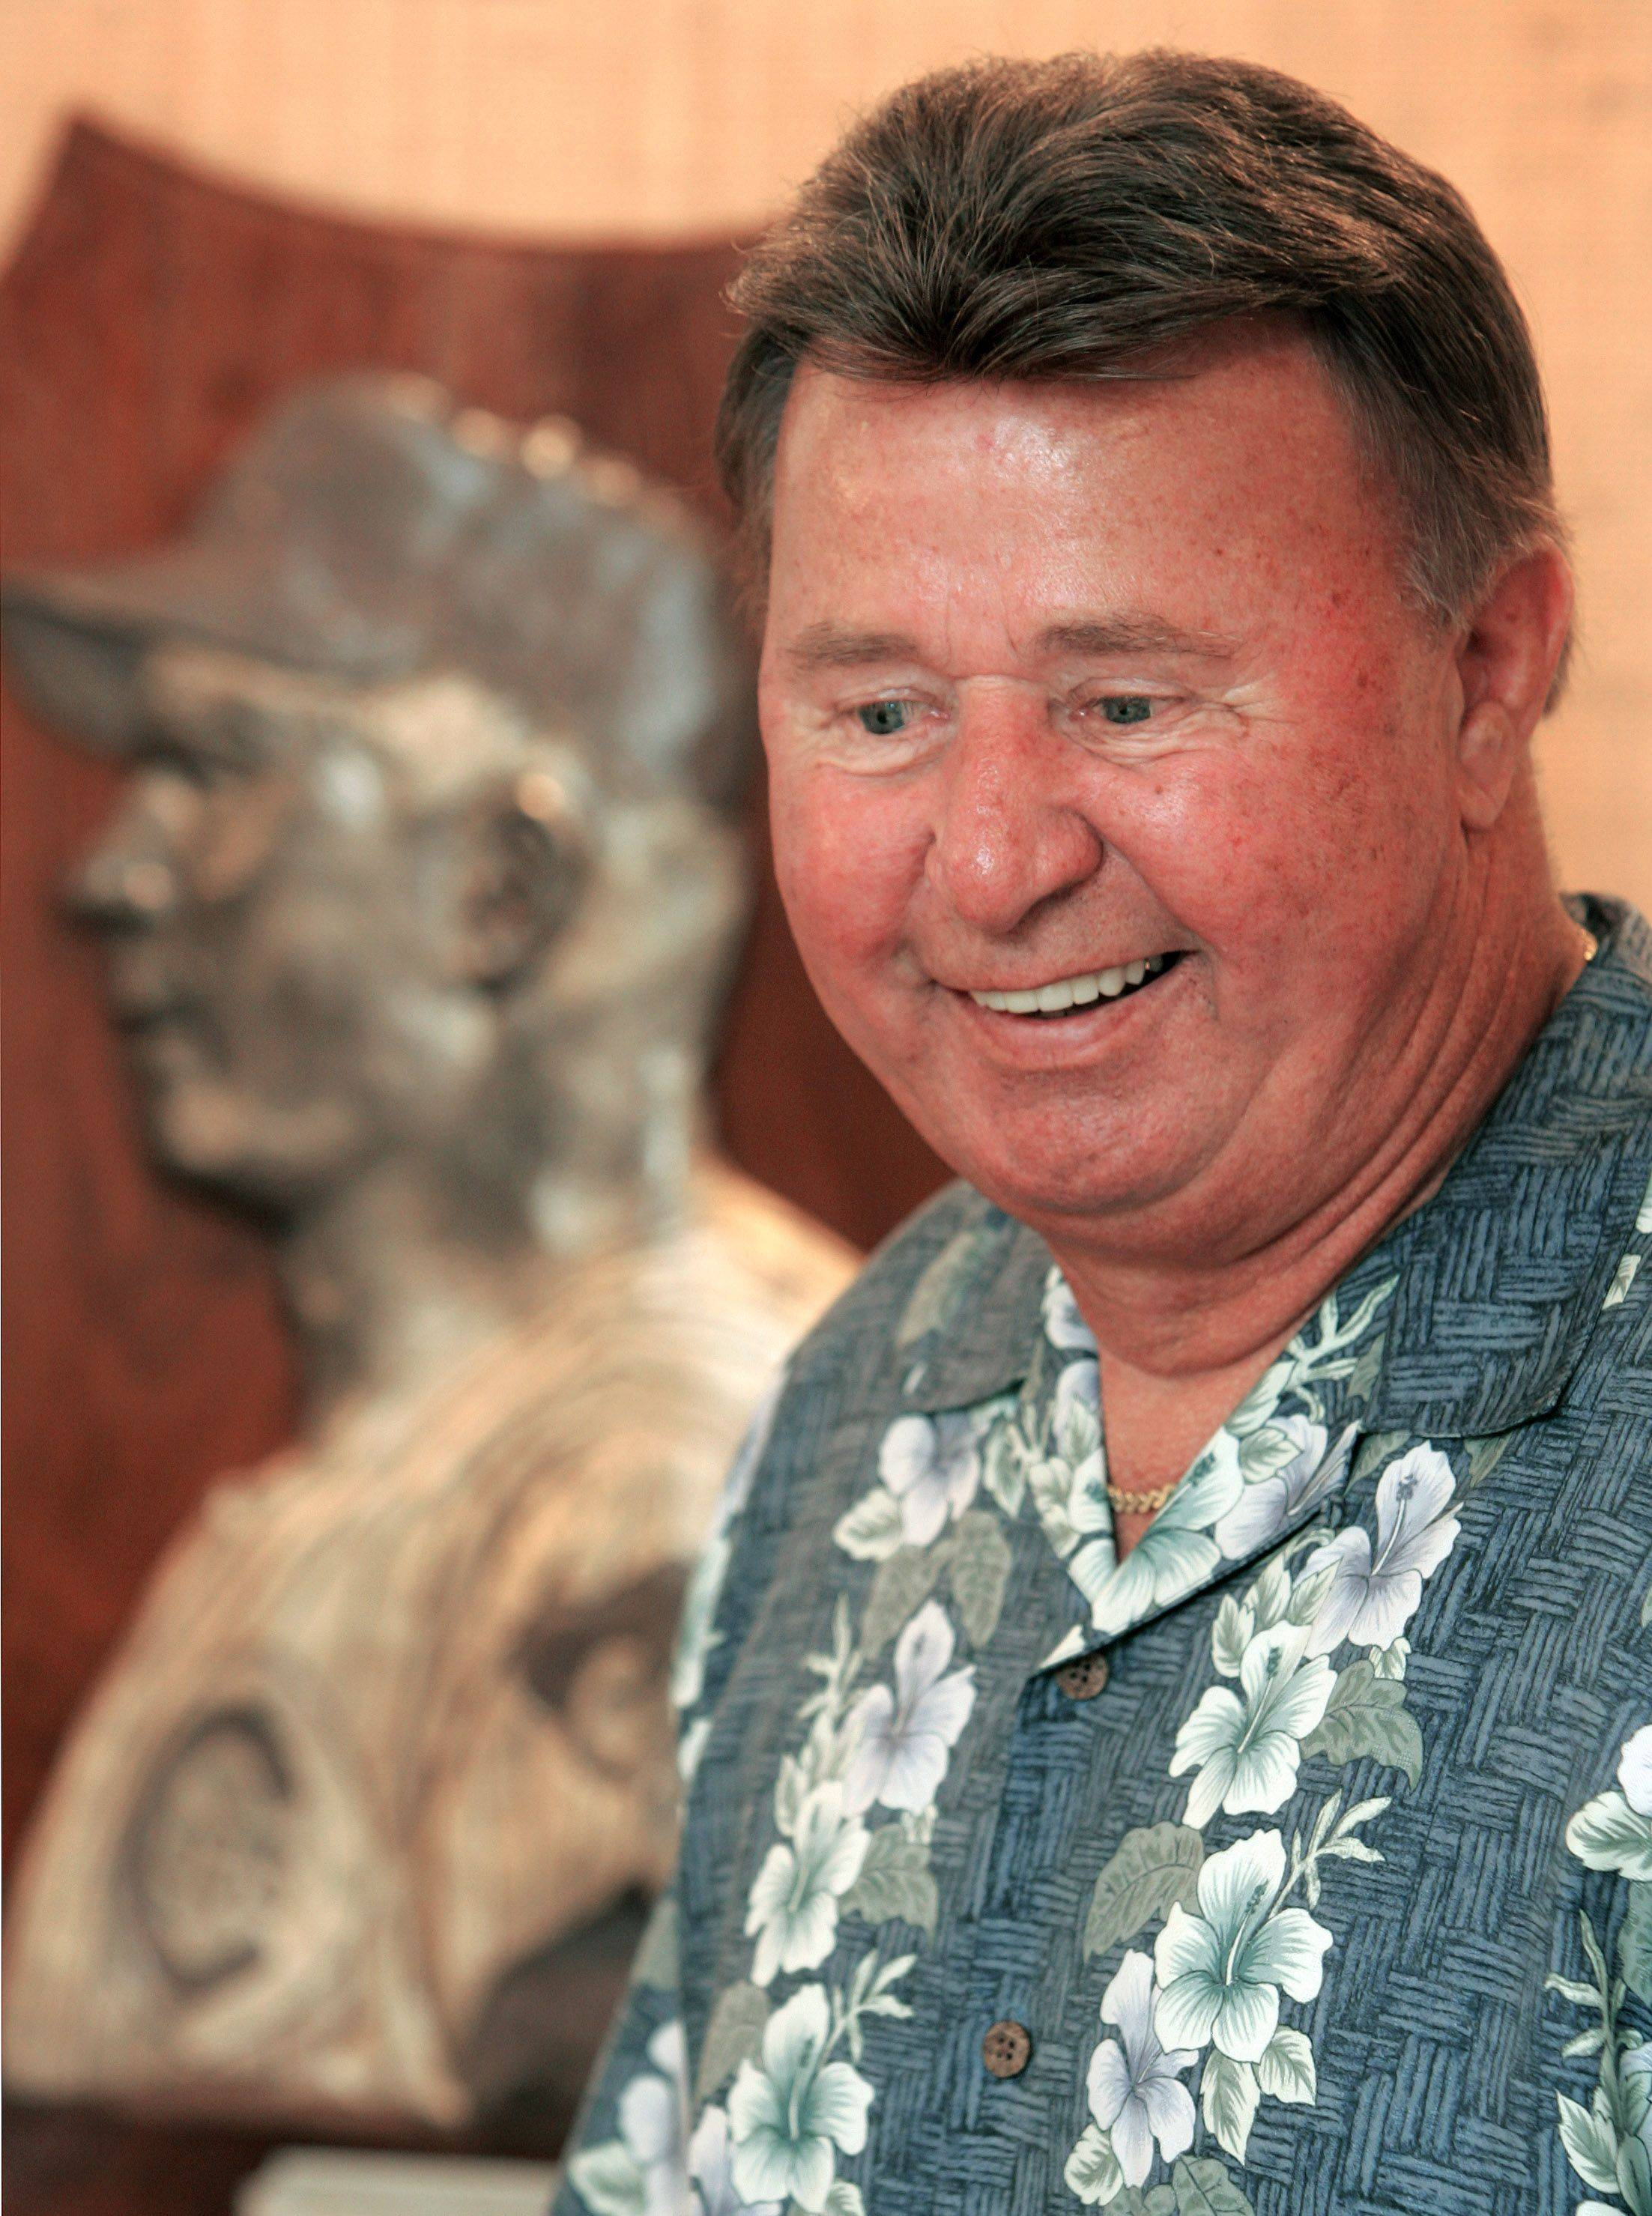 Chicago Cub radio broadcaster Ron Santo at his Bannockburn home in 2006.